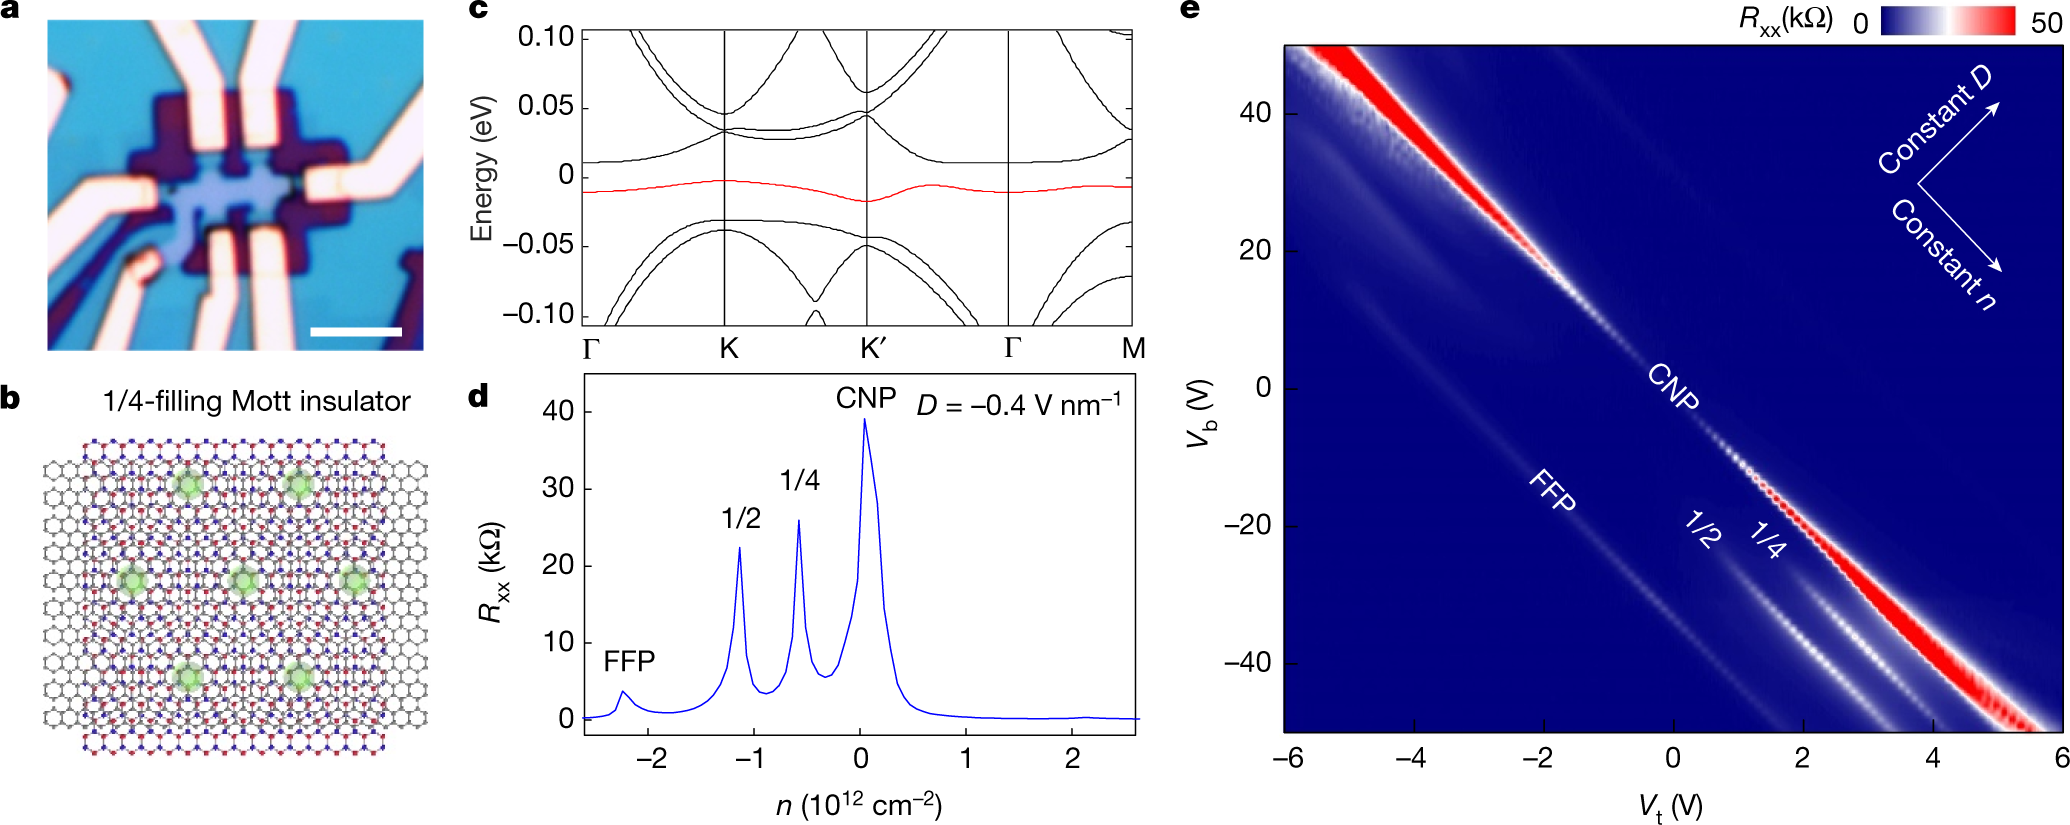 Signatures of tunable superconductivity in a trilayer graphene moir&#2